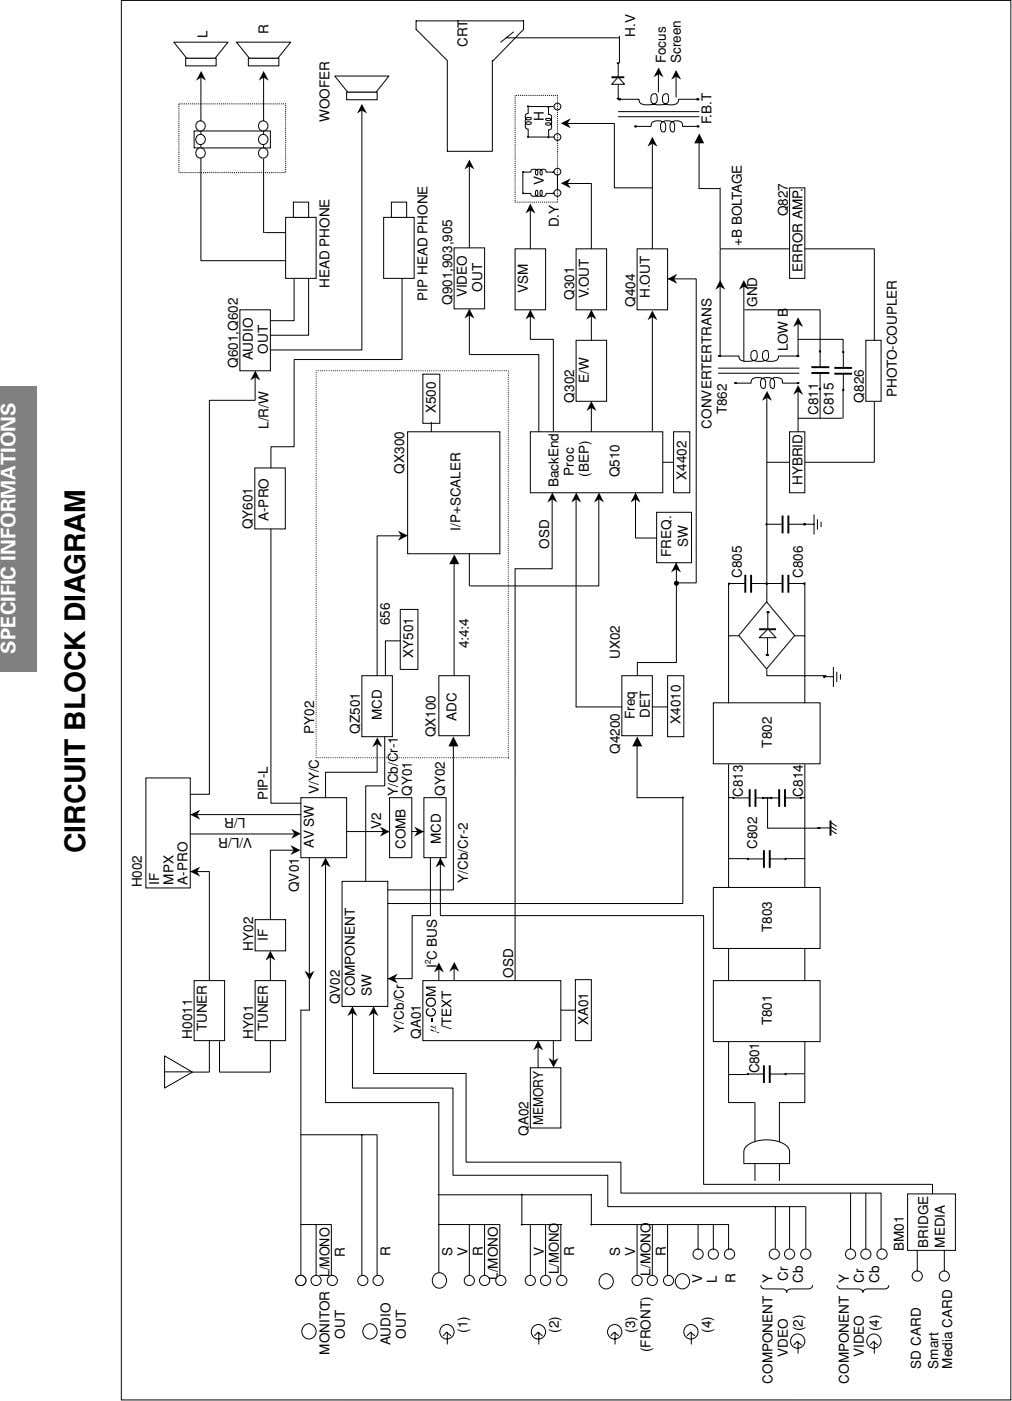 SPECIFIC INFORMATIONS GENERAL ADJUSTMENTS CIRCUIT BLOCK DIAGRAM H002 IF MPX A-PRO H0011 TUNER L Q601,Q602